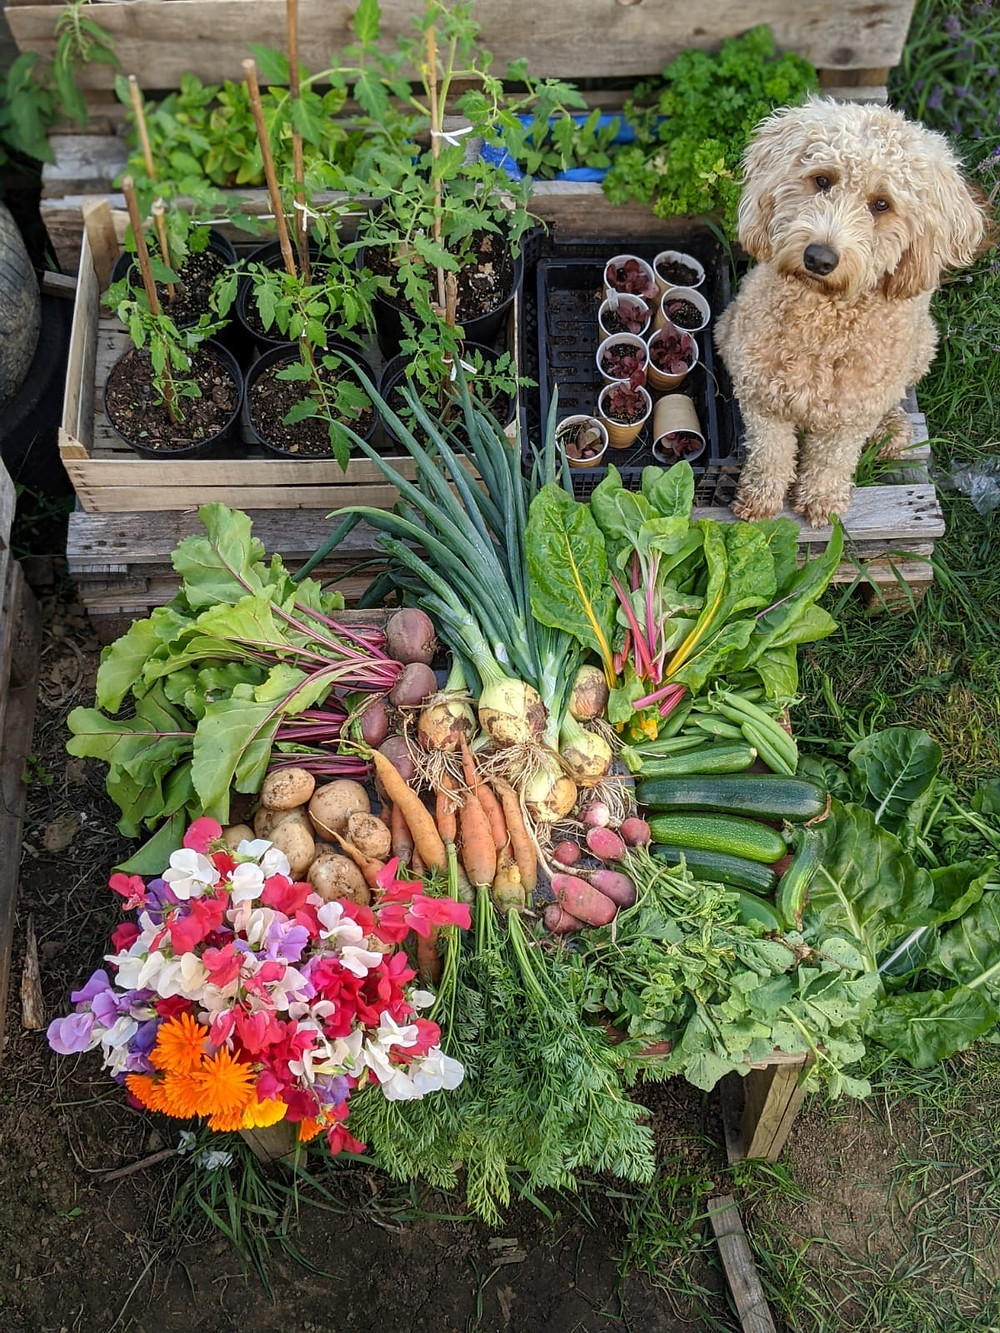 Delicious nutritious vegetables from Emilie's own allotment